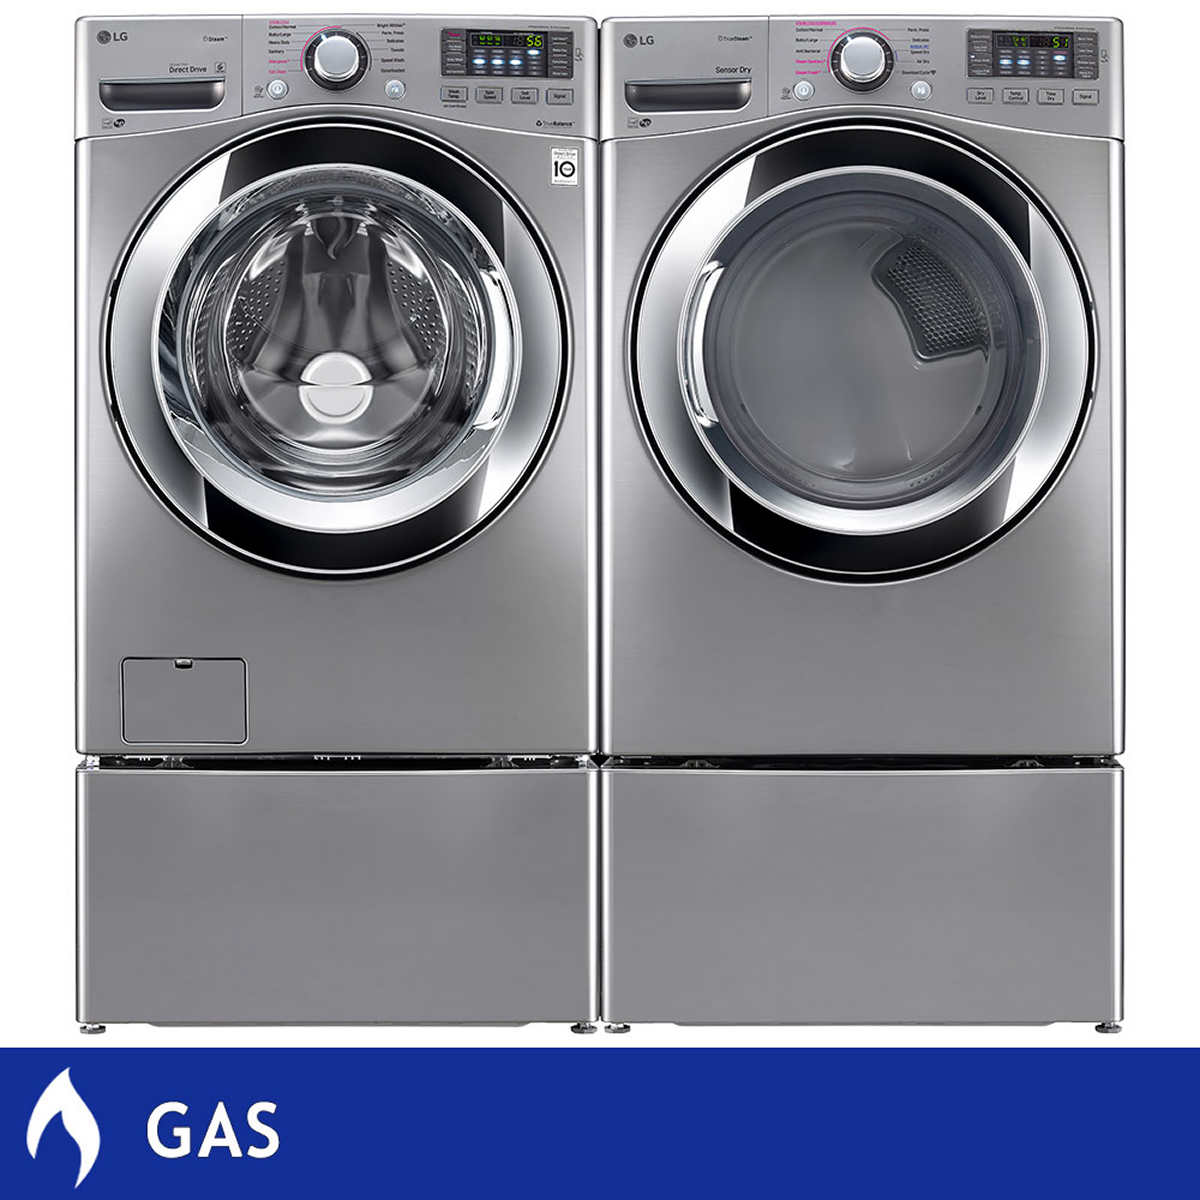 Gas Washers And Dryers Lg 45cuft Ultra Large Capacity Washer With Steam Technology 74